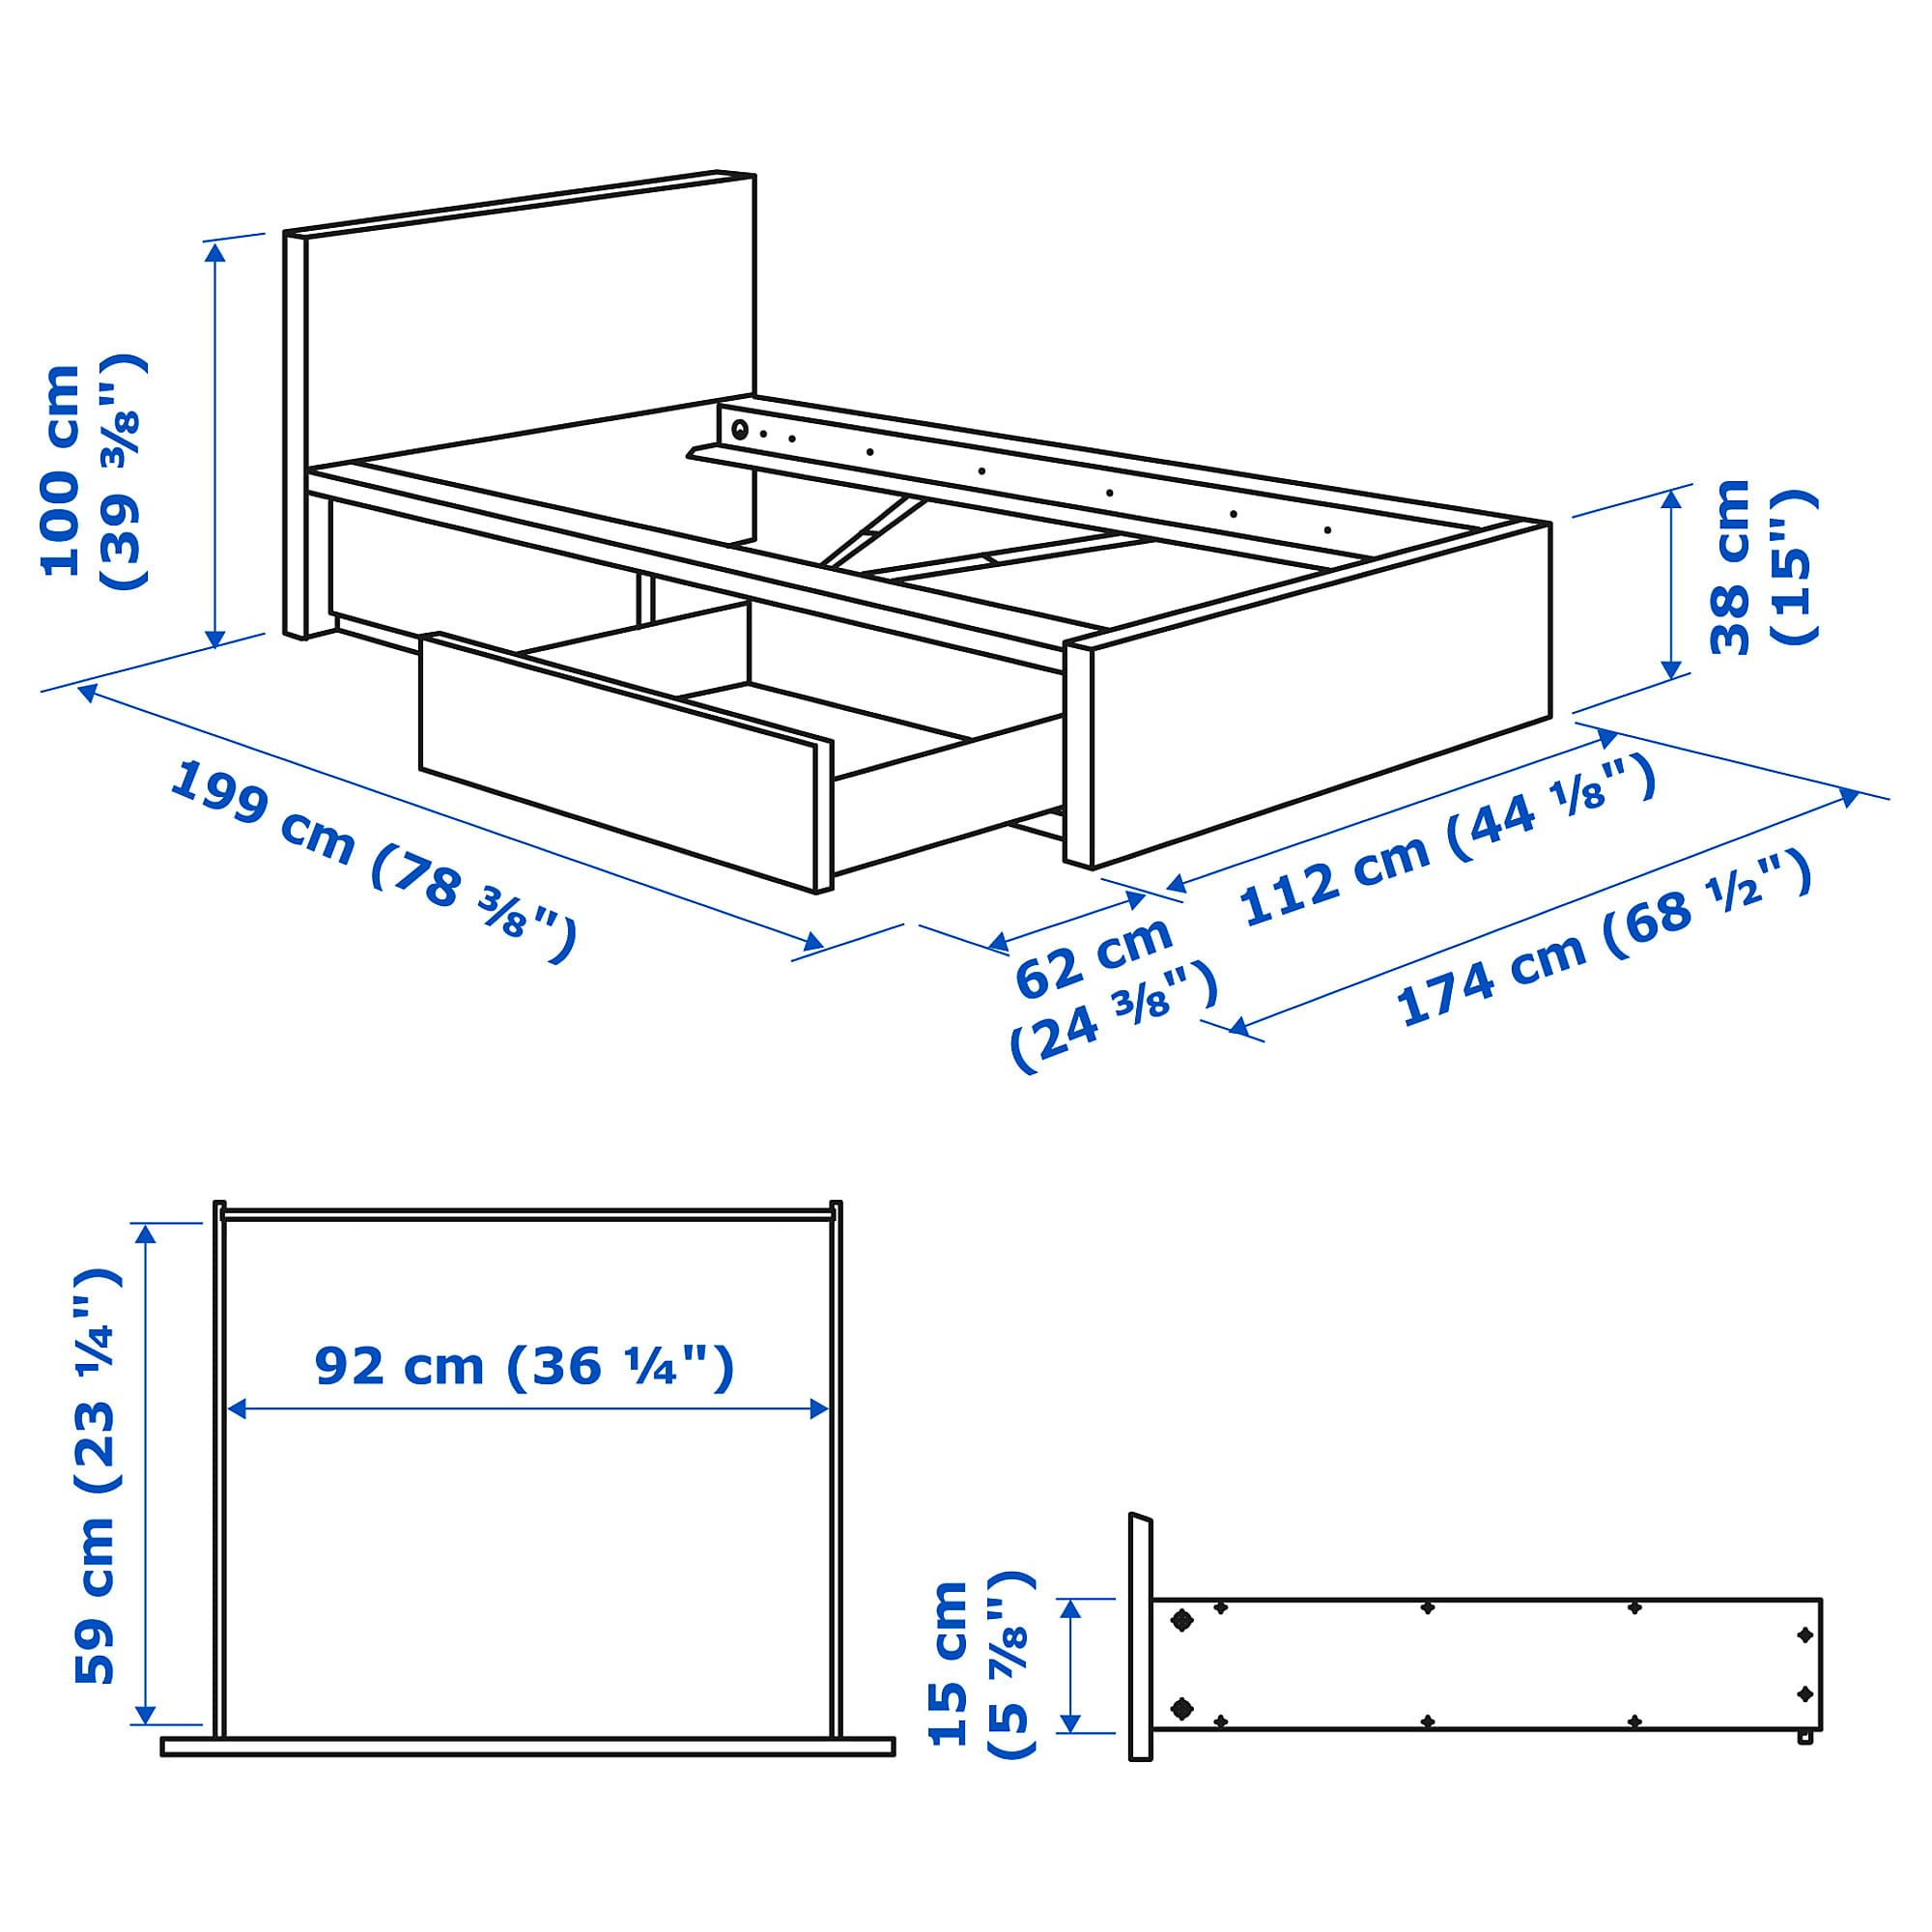 Ikea Malm High Bed Frame 2 Storage Boxes Brown Stained Ash Veneer High Bed Frame Malm Bed Frame Malm Bed